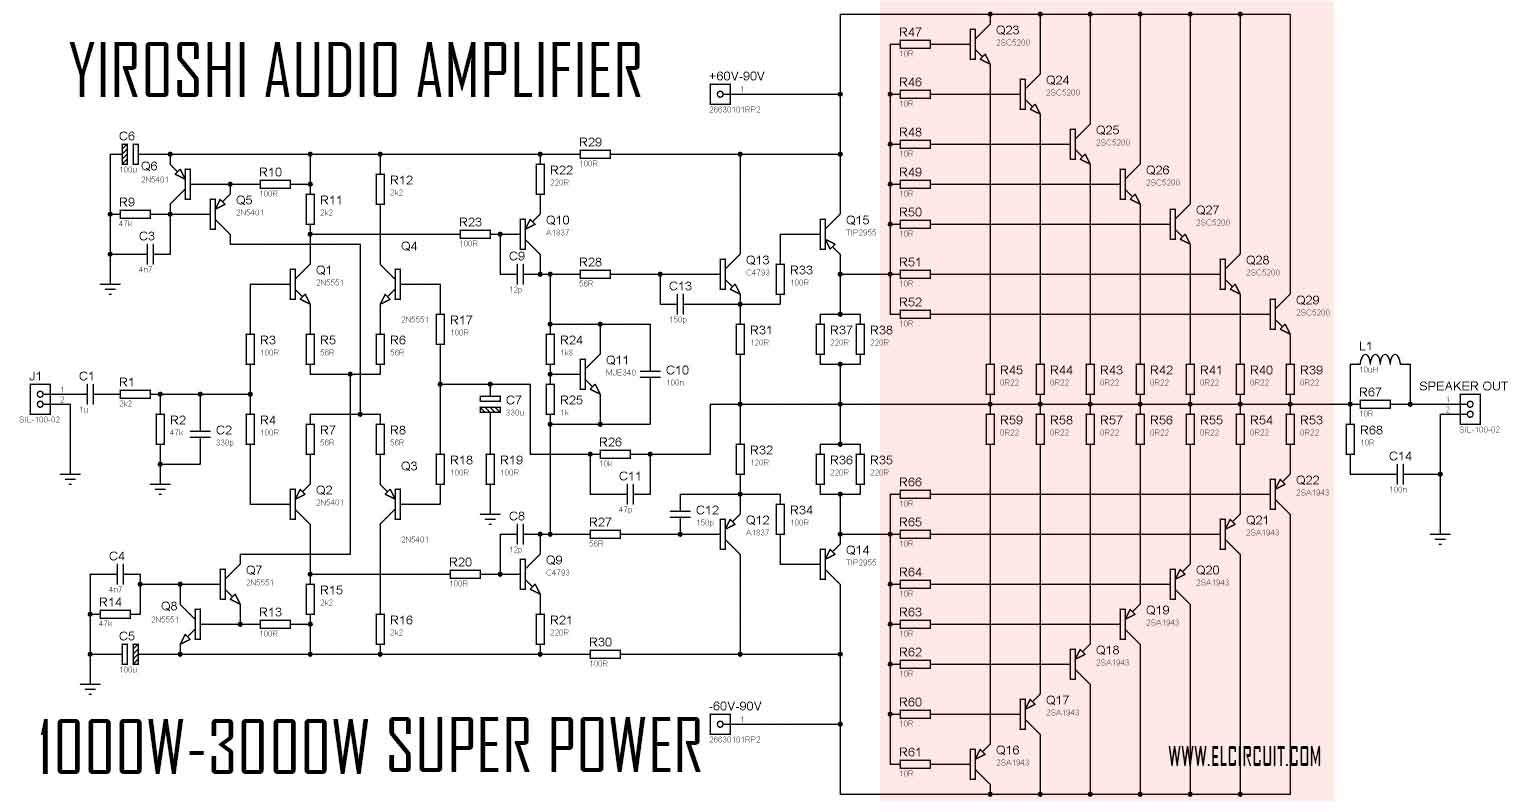 Super Power Amplifier Yiroshi Audio 1000 Watt Ho Hd Pinterest Linear Regulated Dual Polarity Supply By Lm317 And Lm337 Circuit Diagram